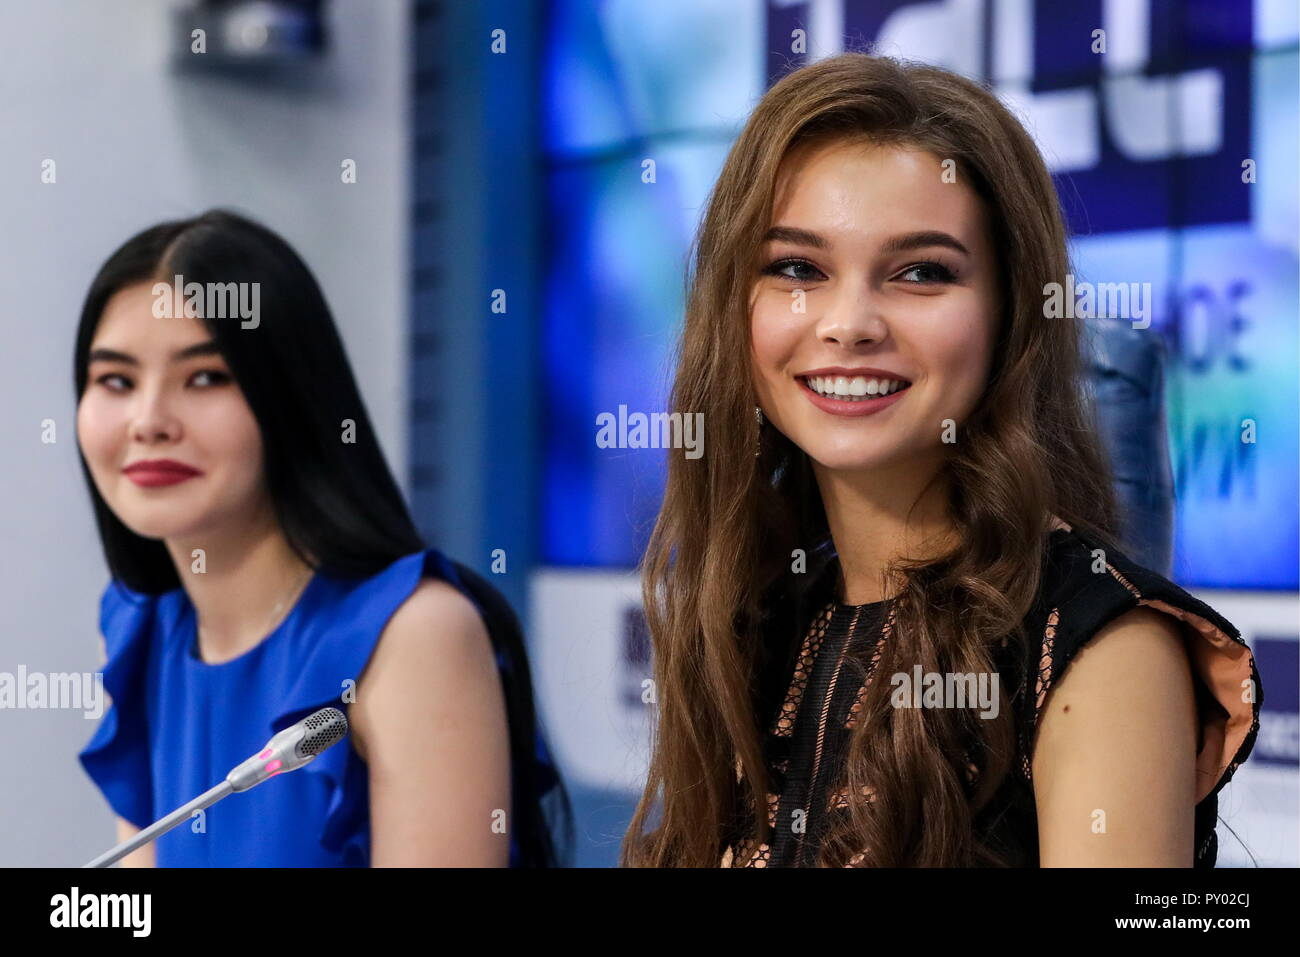 Moscow, Russia  25th October, 2018  Natalya Stroeva (L), second